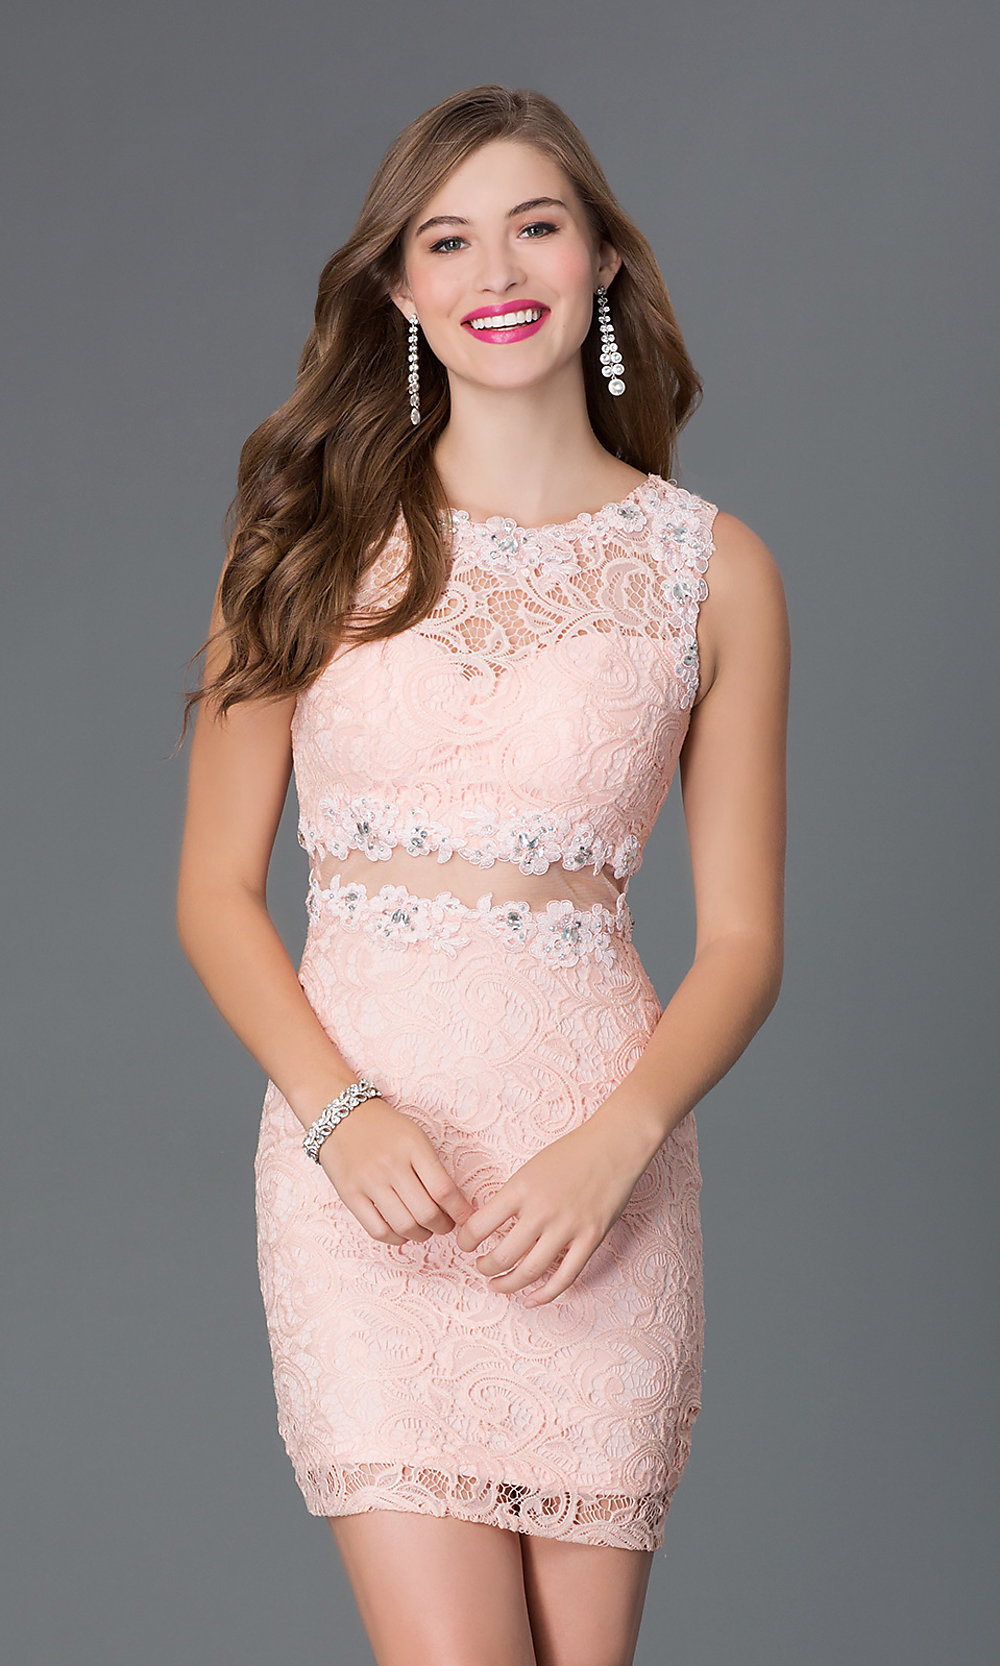 Lace Cocktail Dress Homecoming Dress- PromGirl